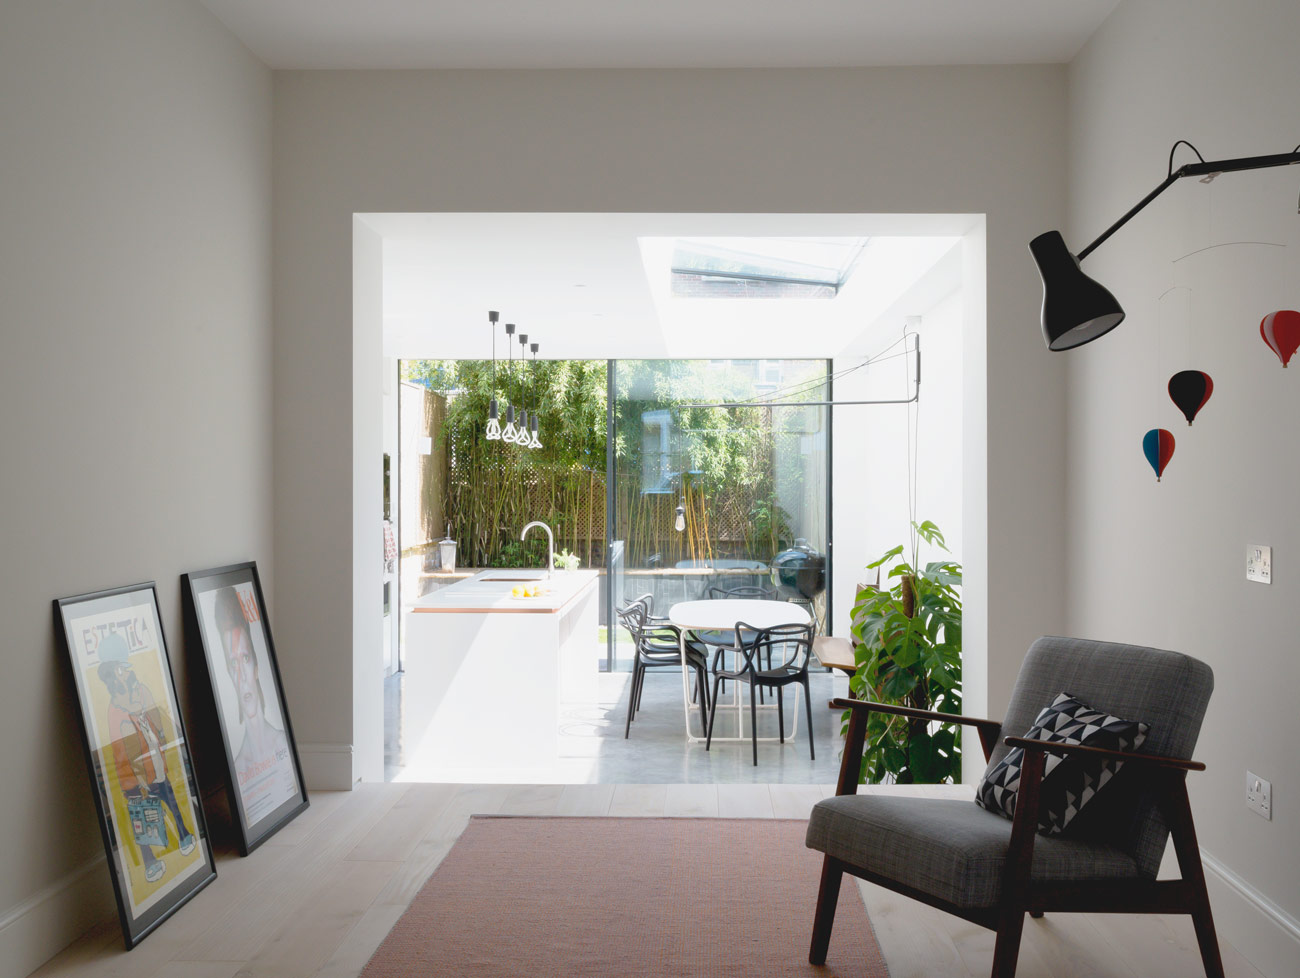 House extension ideas in London — Architecture for London